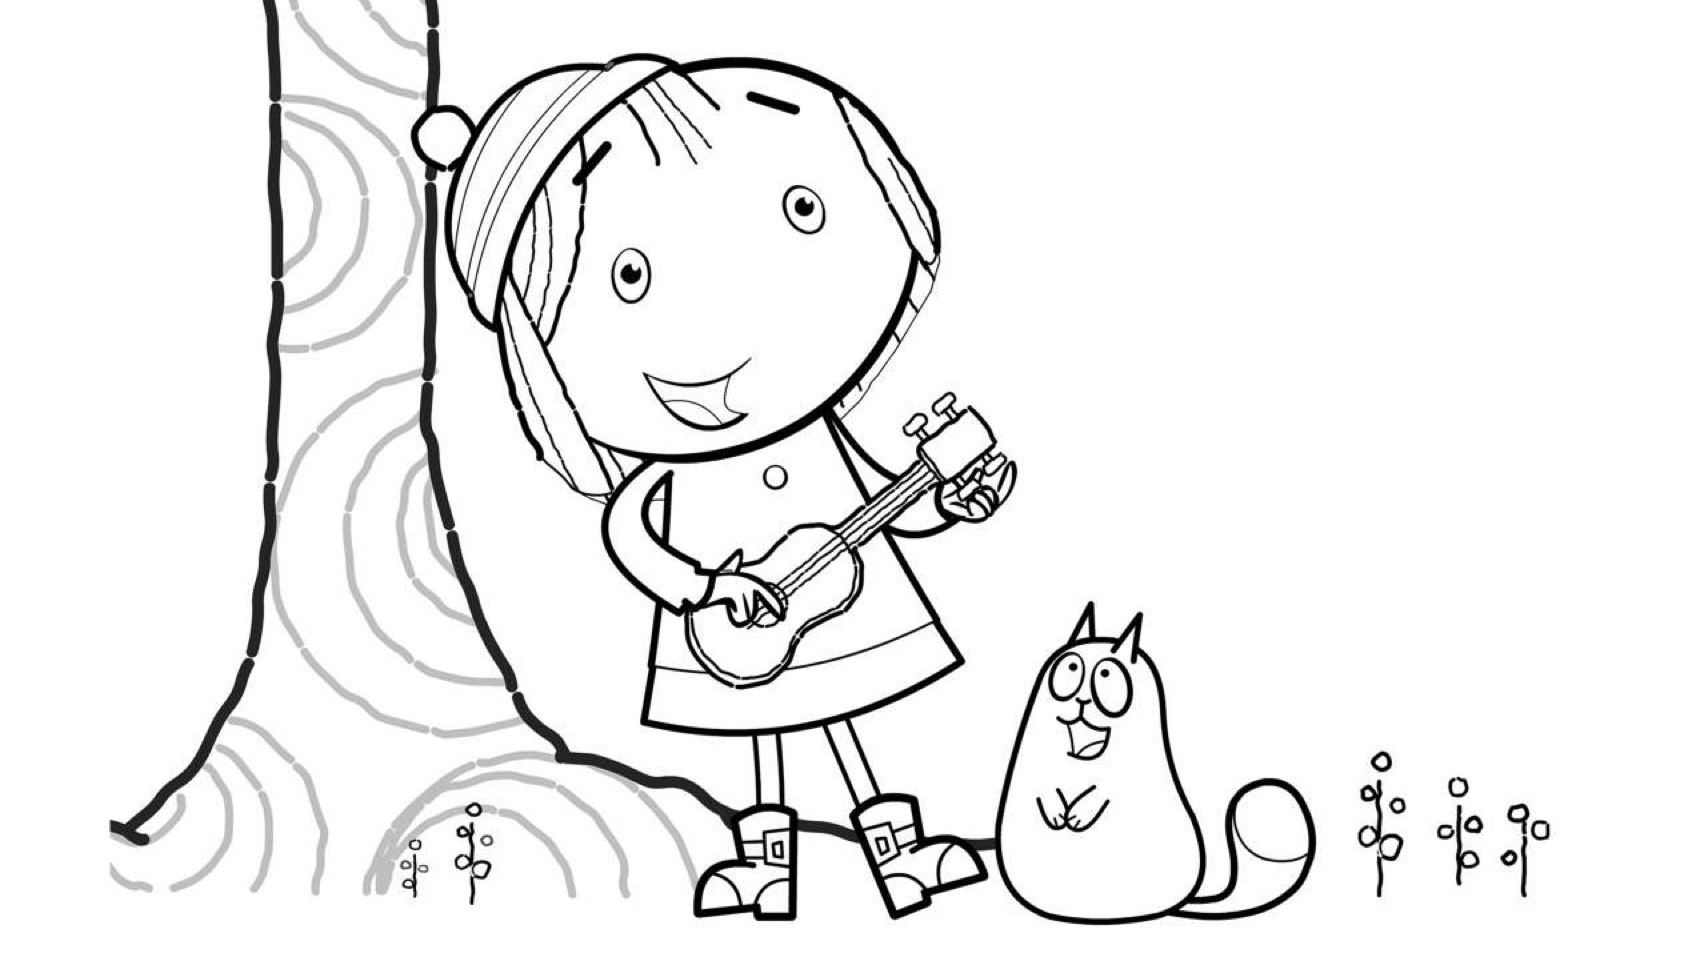 The Tree Coloring Page Kids Coloring Pages Pbs Kids For Parents